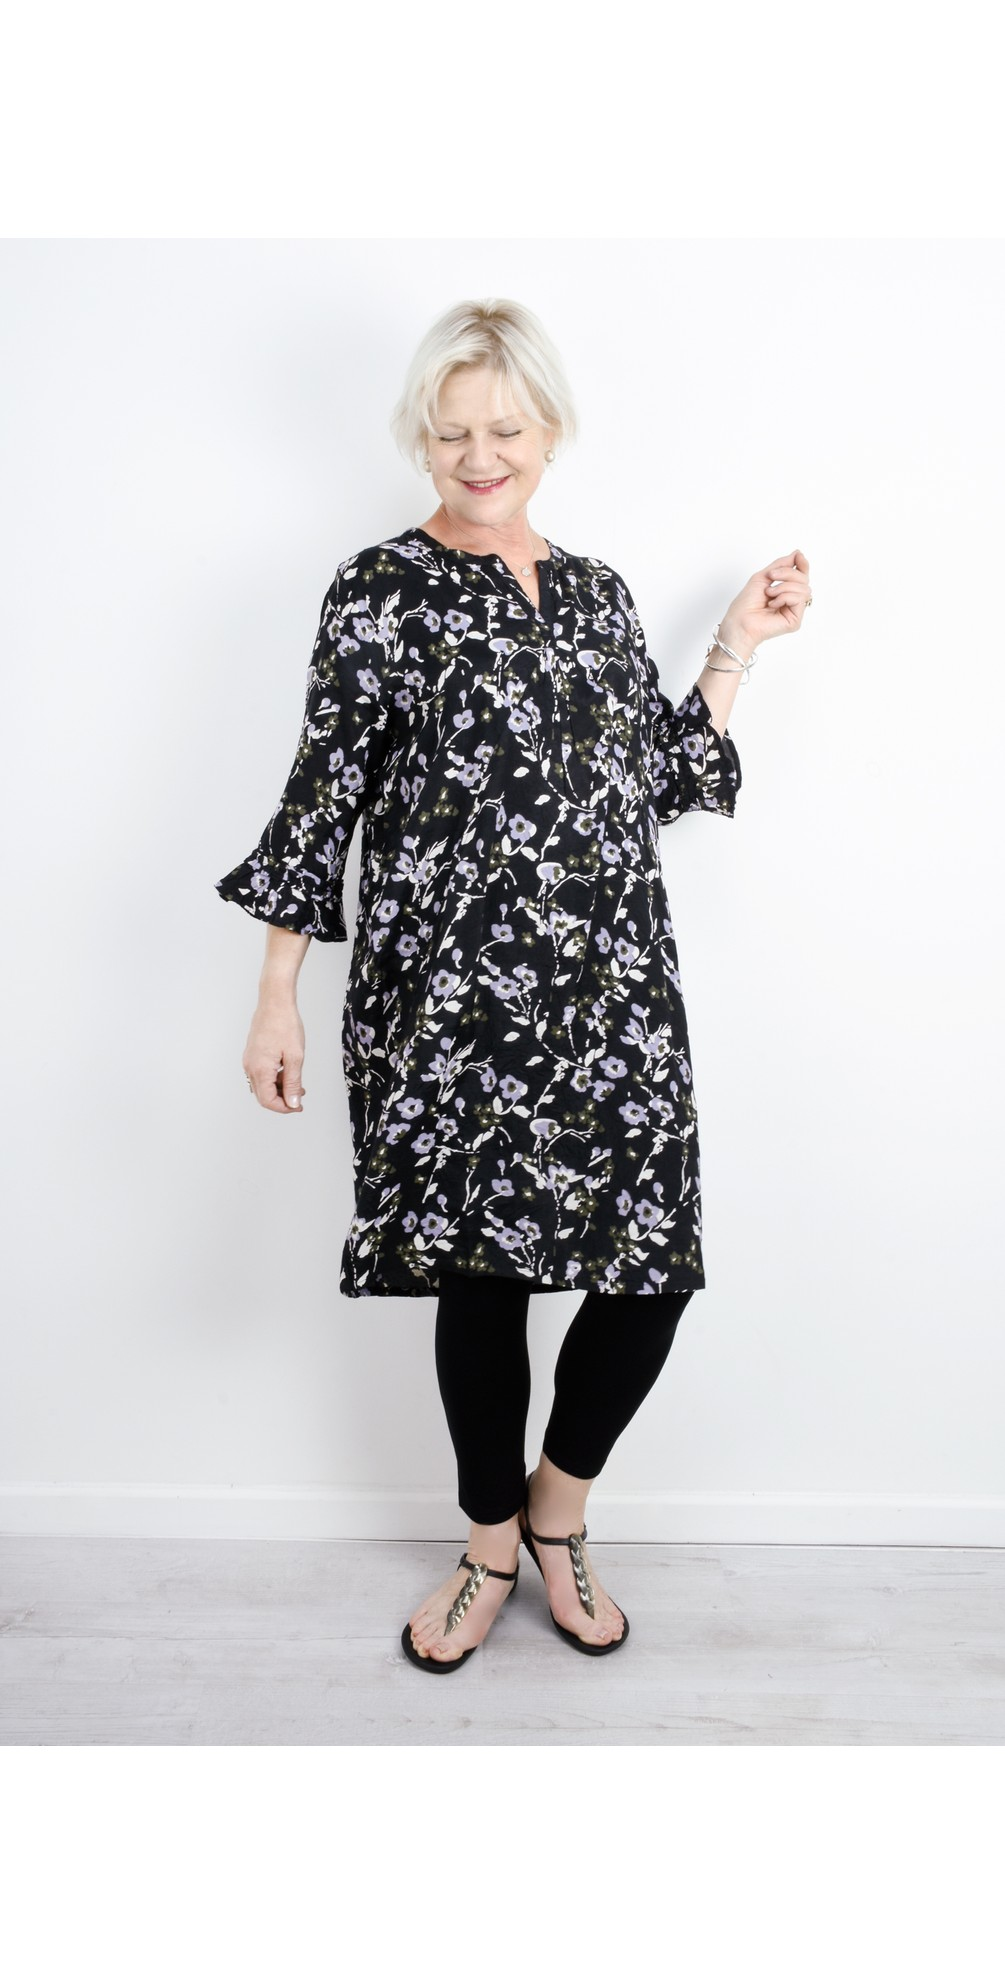 Nolene Floral Dress main image